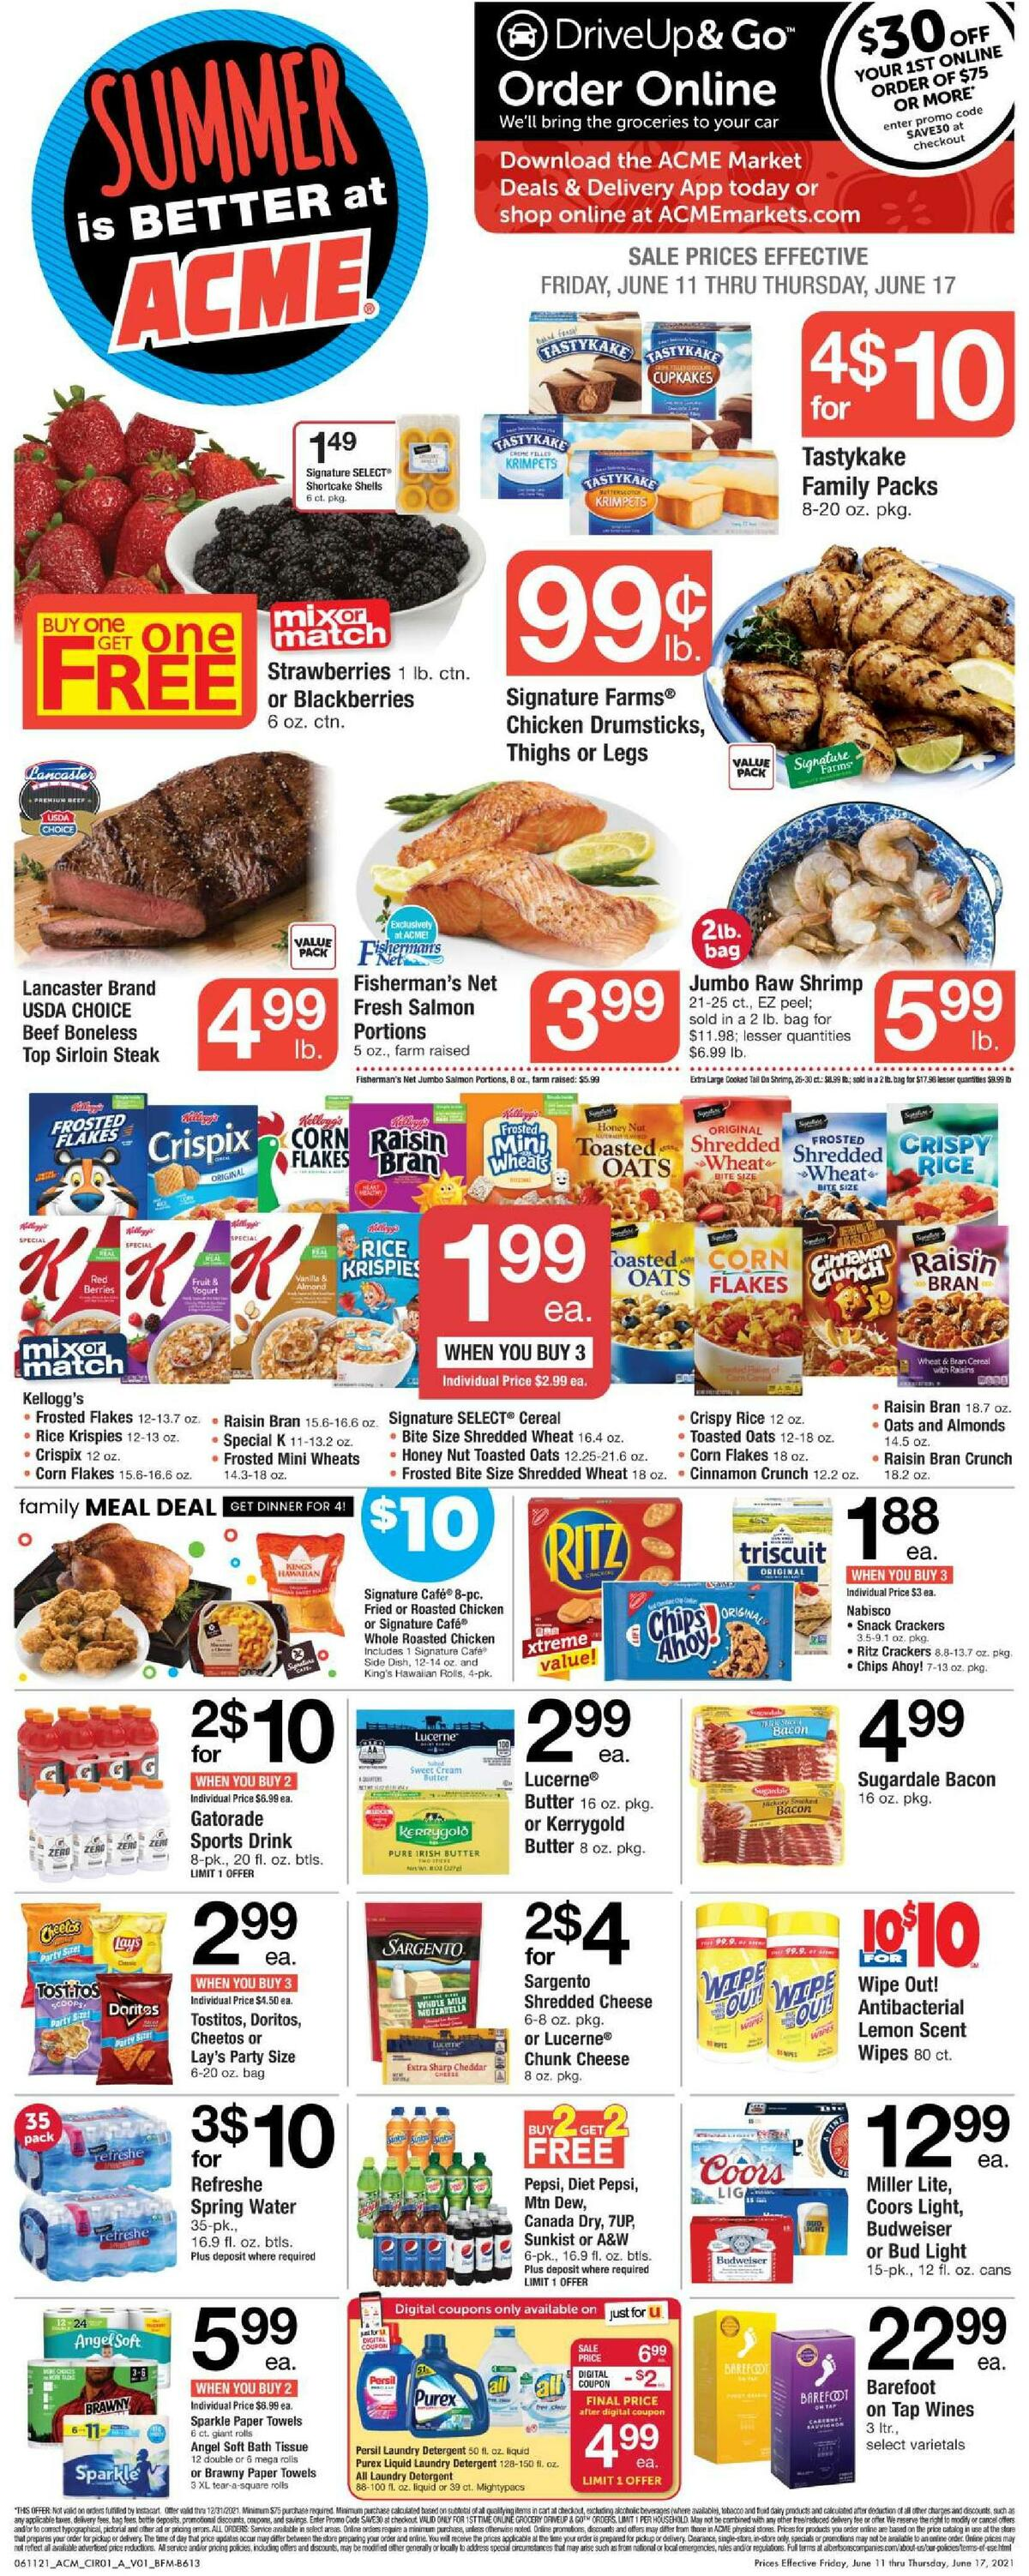 ACME Markets Weekly Ad from June 11